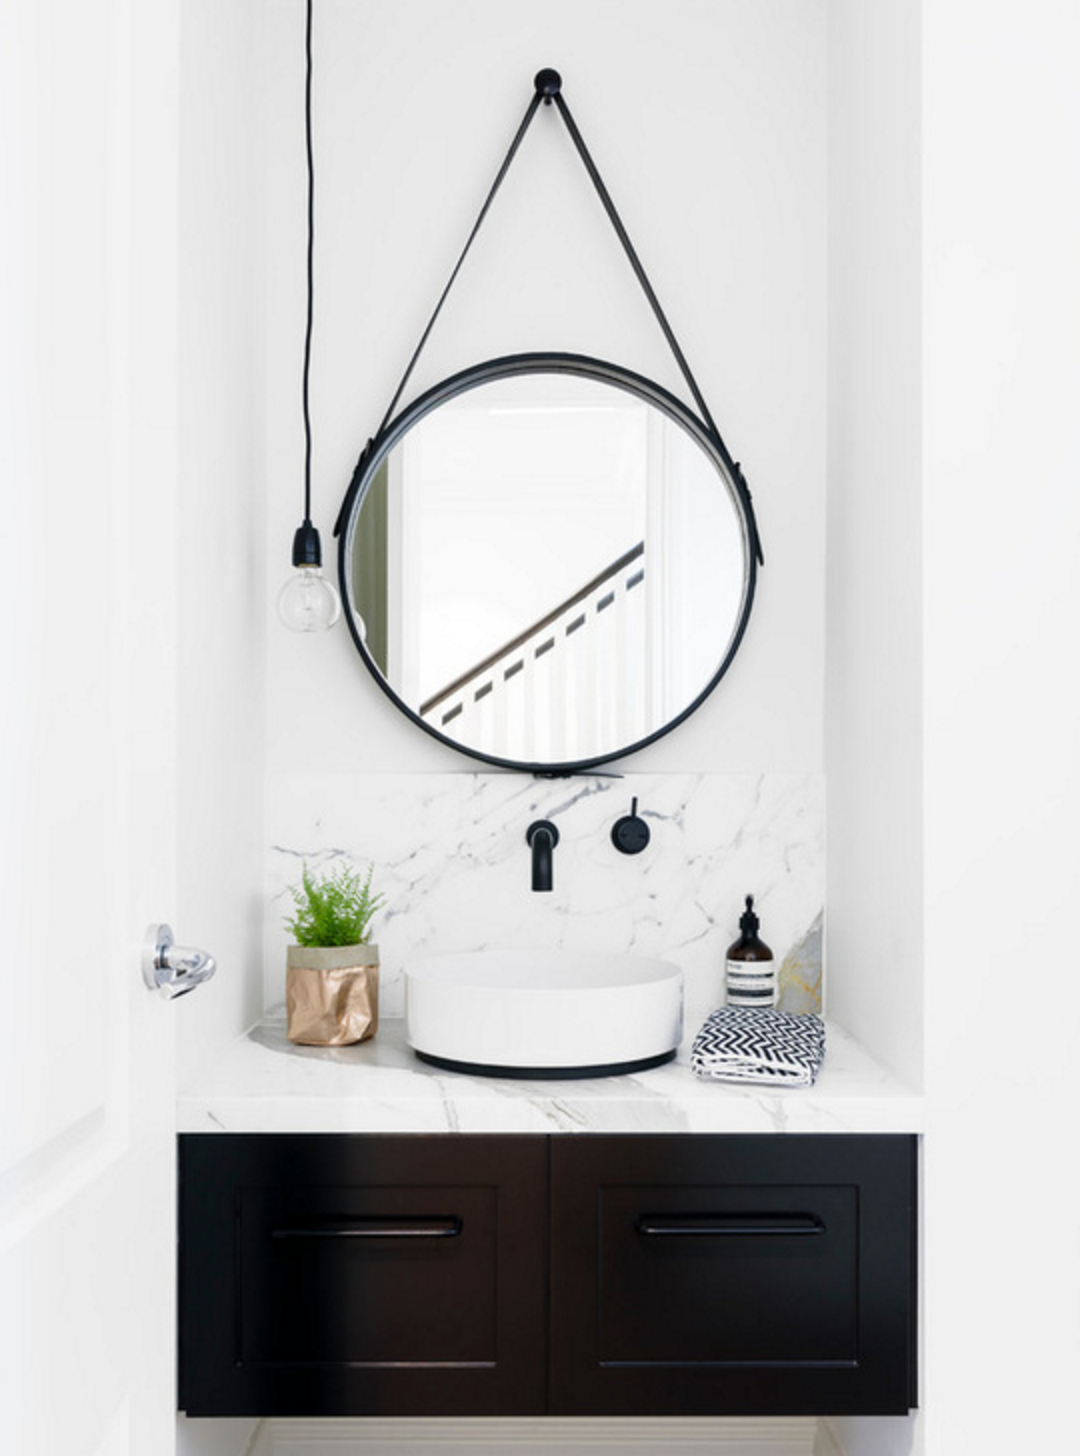 Hub Modern And Contemporary Accent Mirror | Interiors regarding Hub Modern And Contemporary Accent Mirrors (Image 16 of 30)